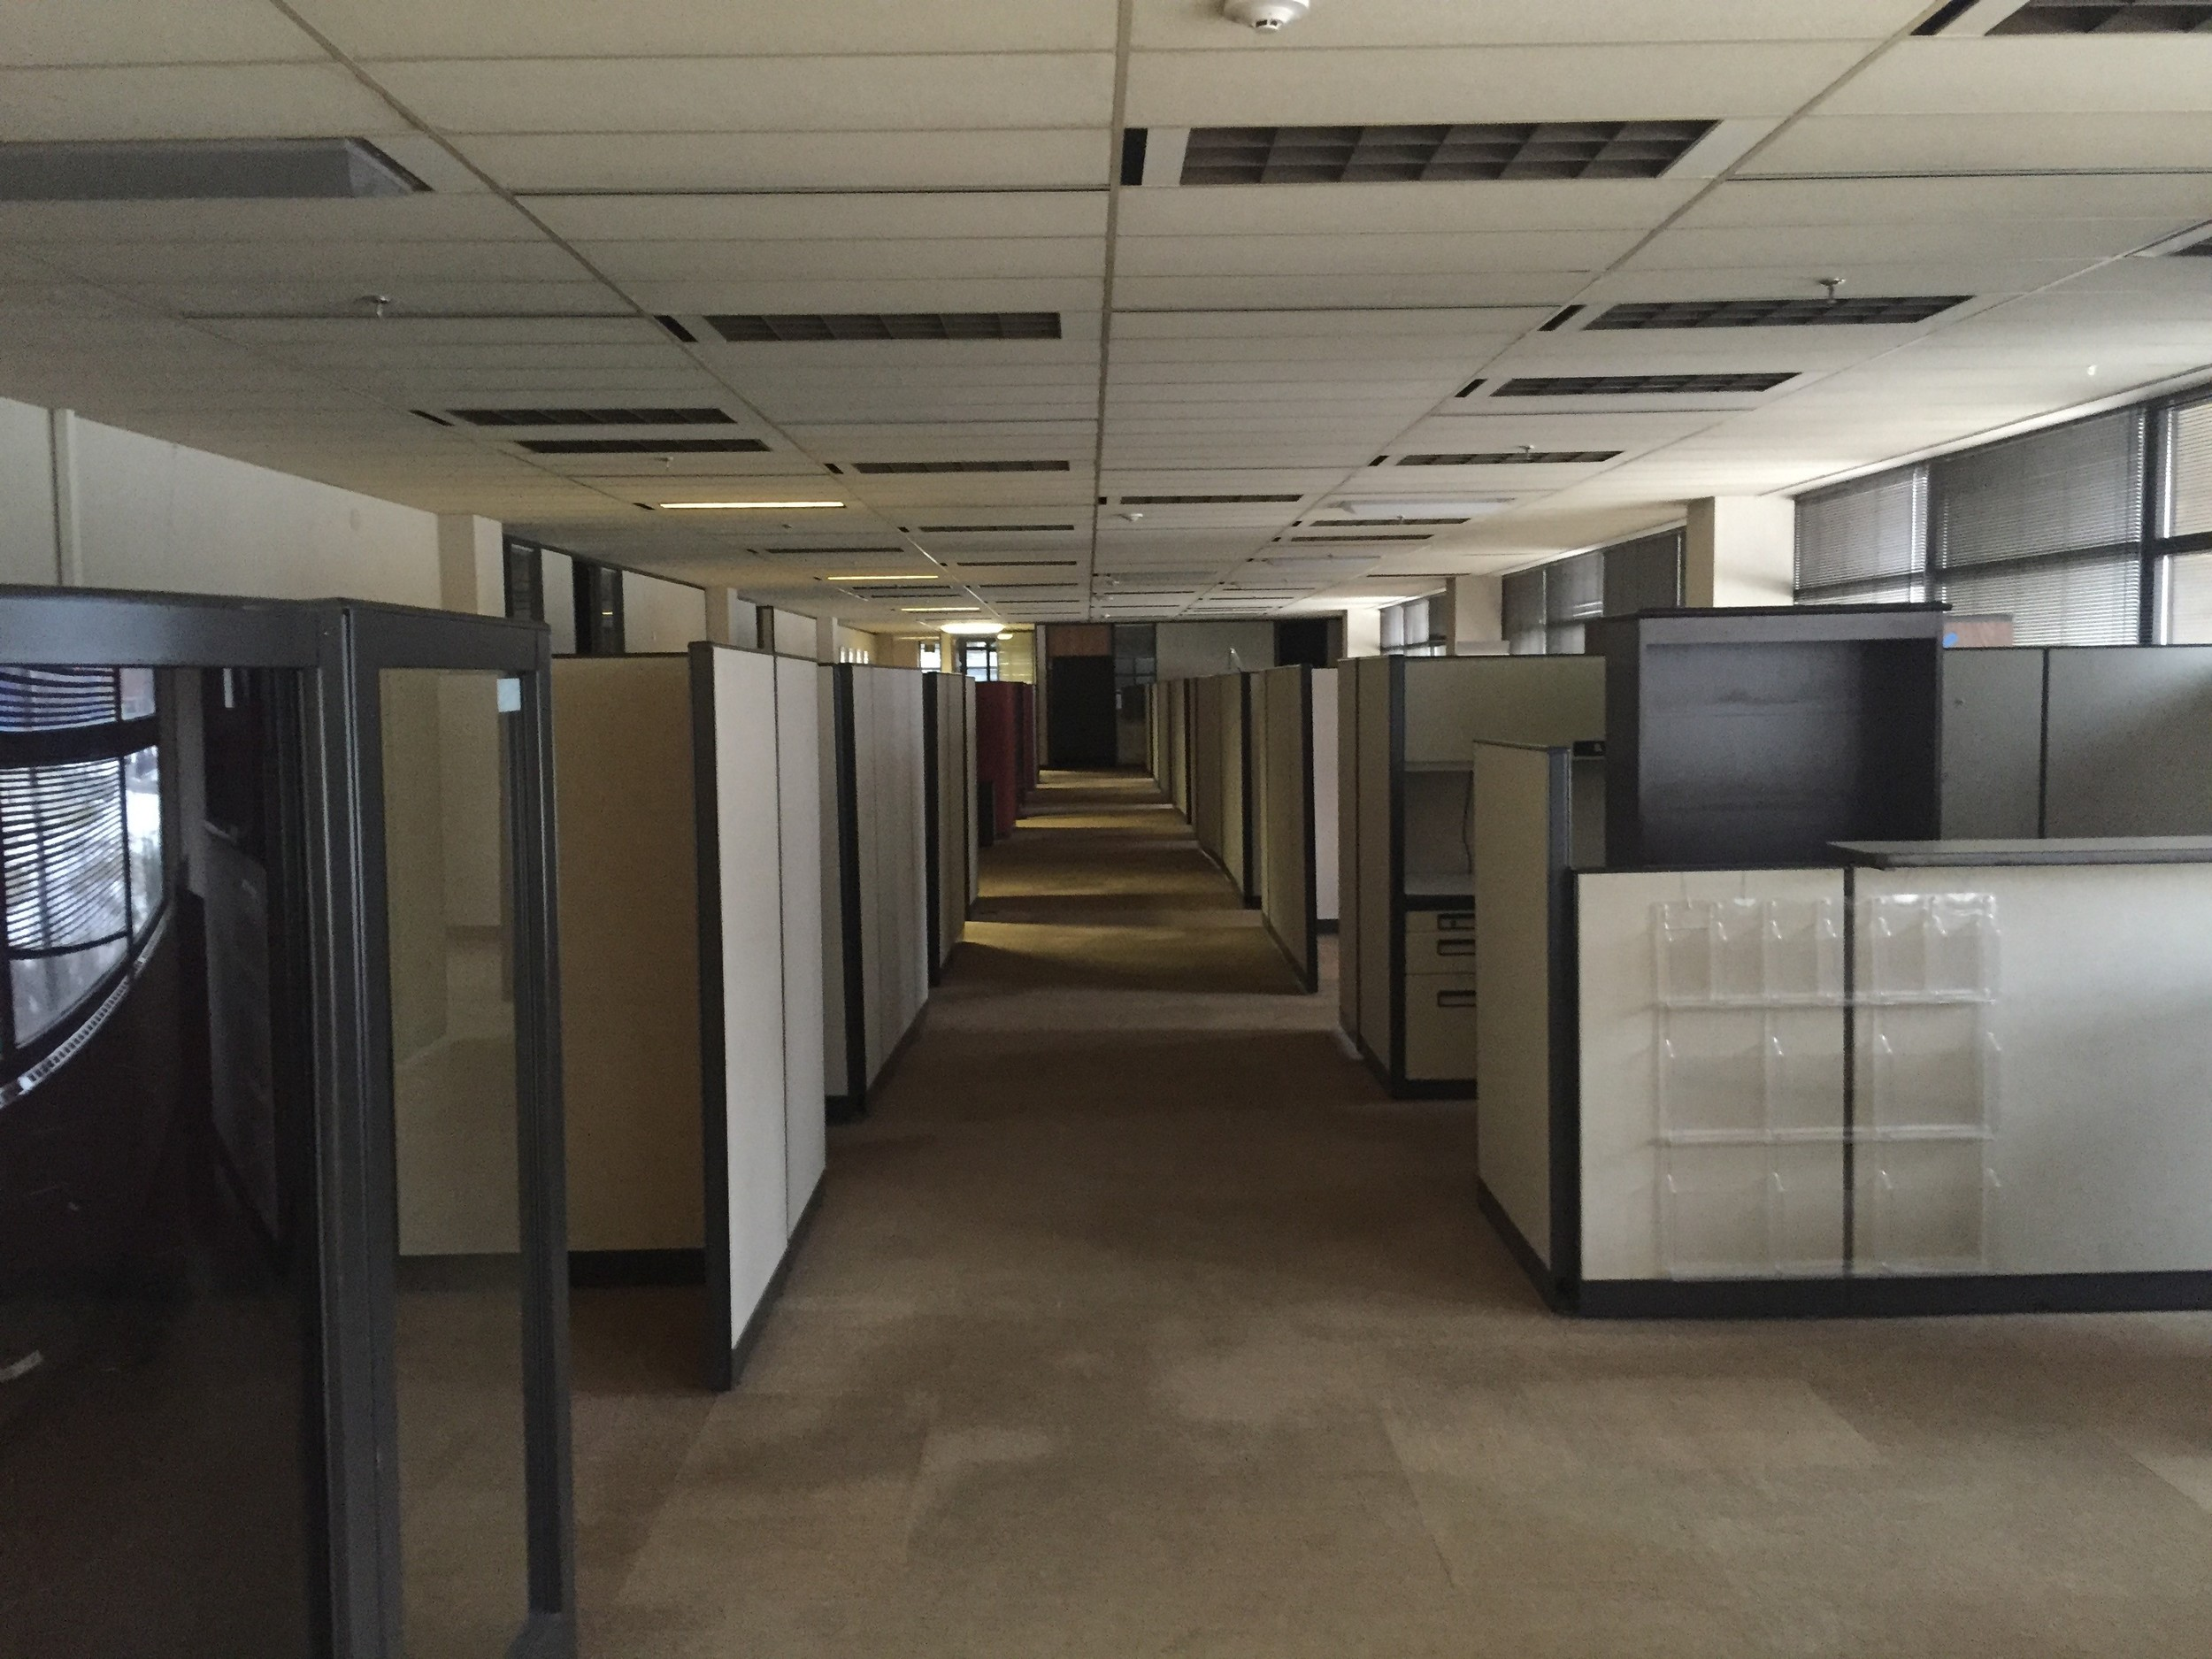 Existing Circulation Problems in Herschler Building